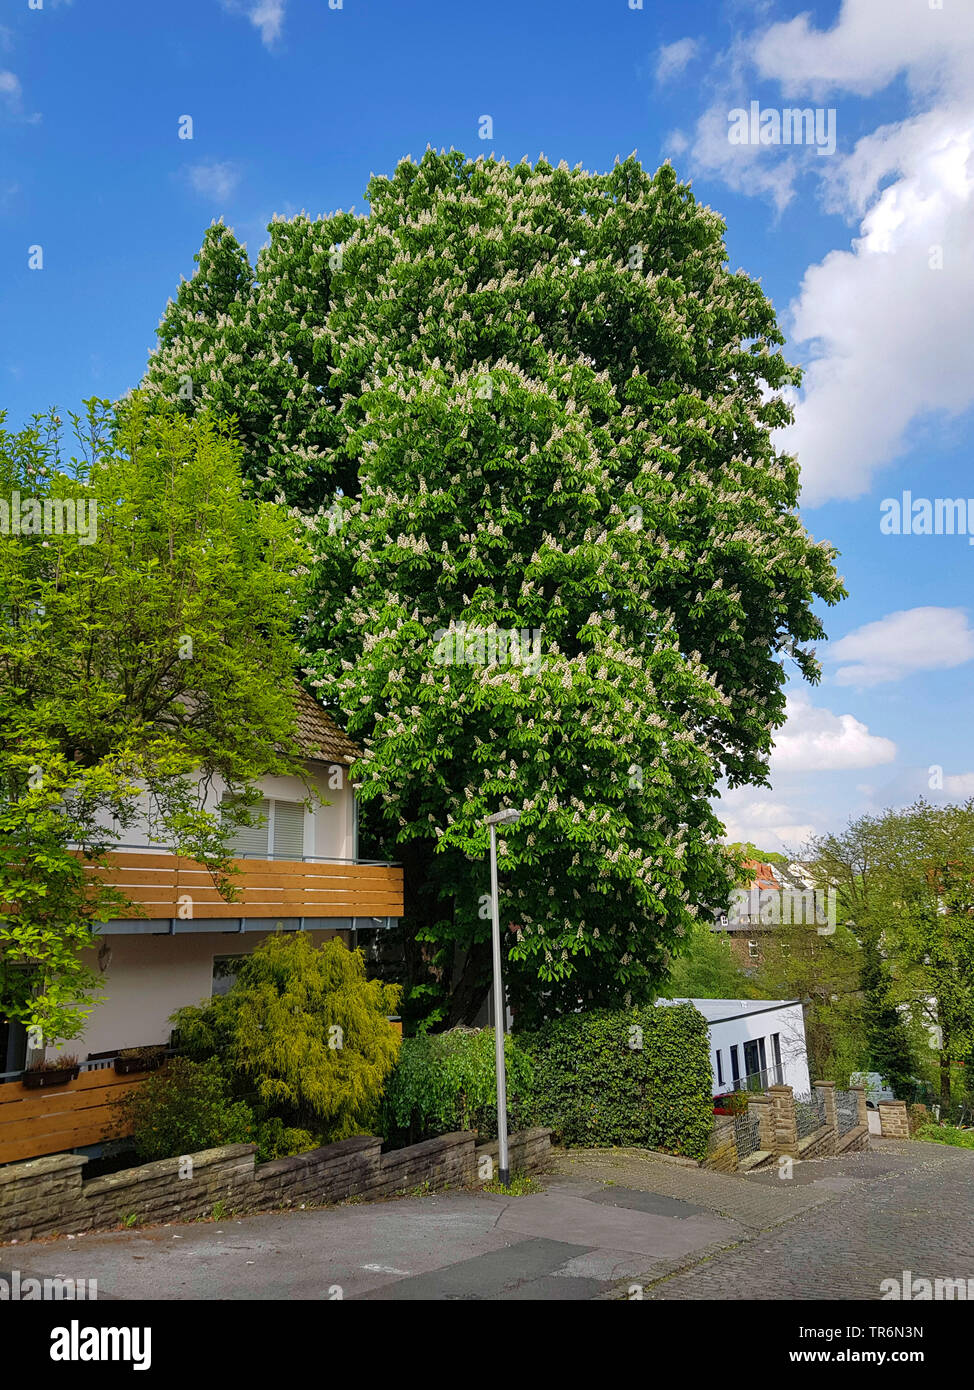 common horse chestnut (Aesculus hippocastanum), blooming tree in a frontgarden, Germany Stock Photo